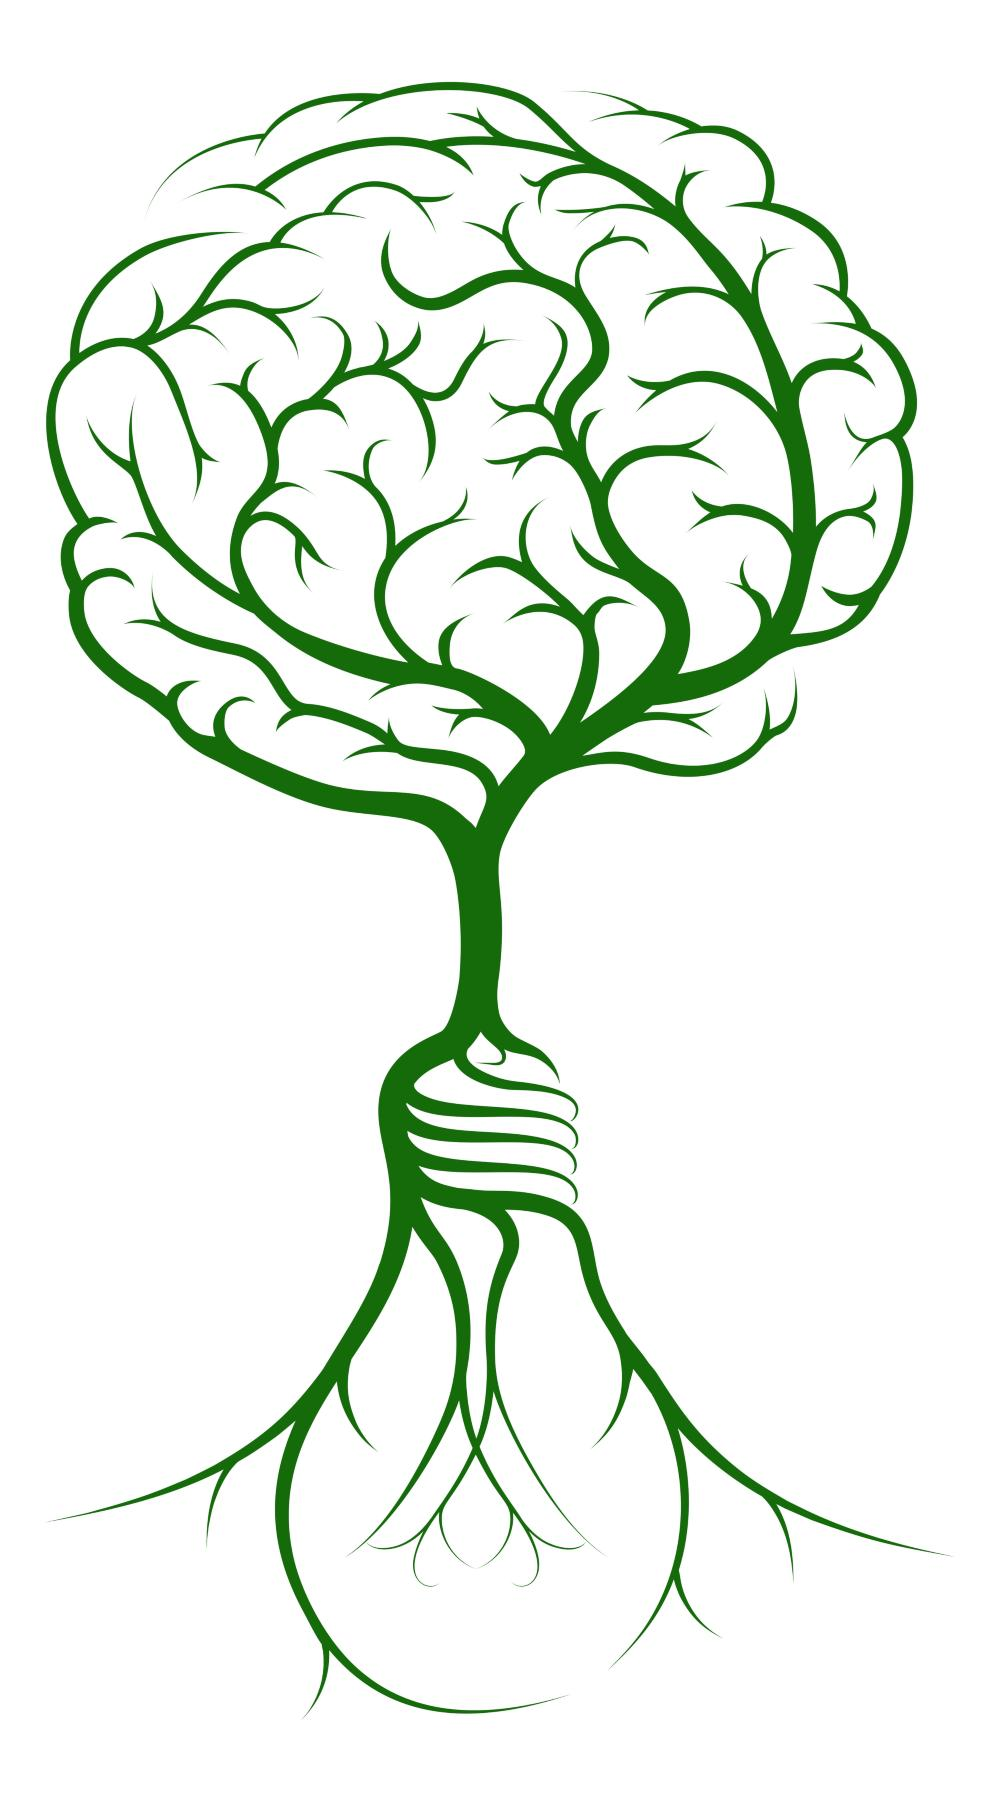 A green brain in the shape of a tree growing out of a lightbulb with roots